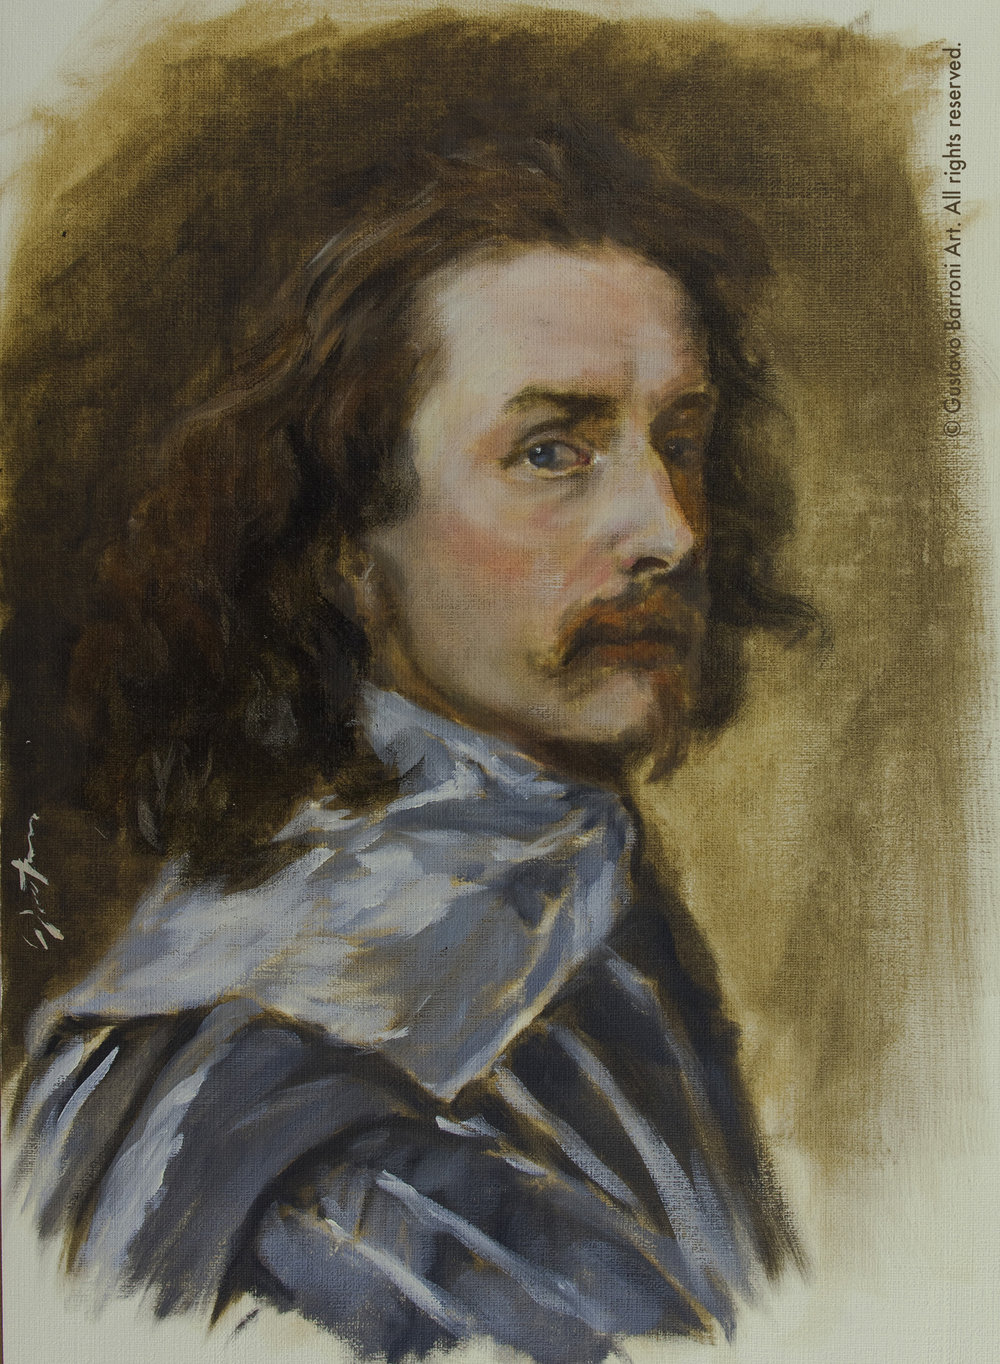 Sir Anthony Van Dyck self-portrait